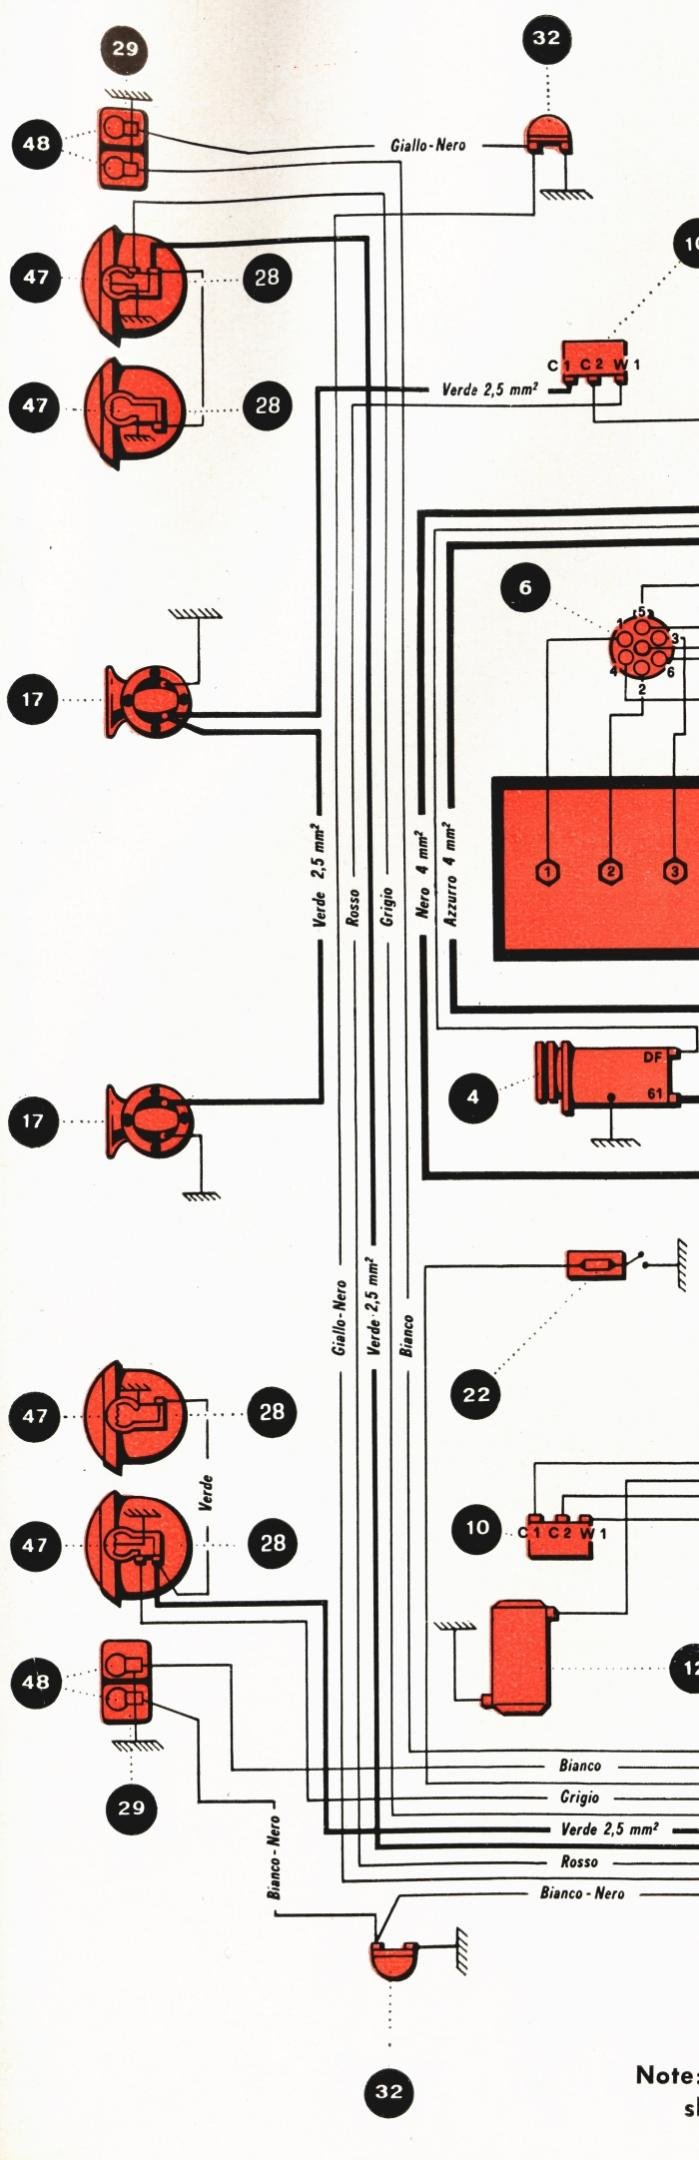 Brake Lights And Turn Signal Problem Alfa Romeo Bulletin Board Duetto Wiring Diagram Attached Images